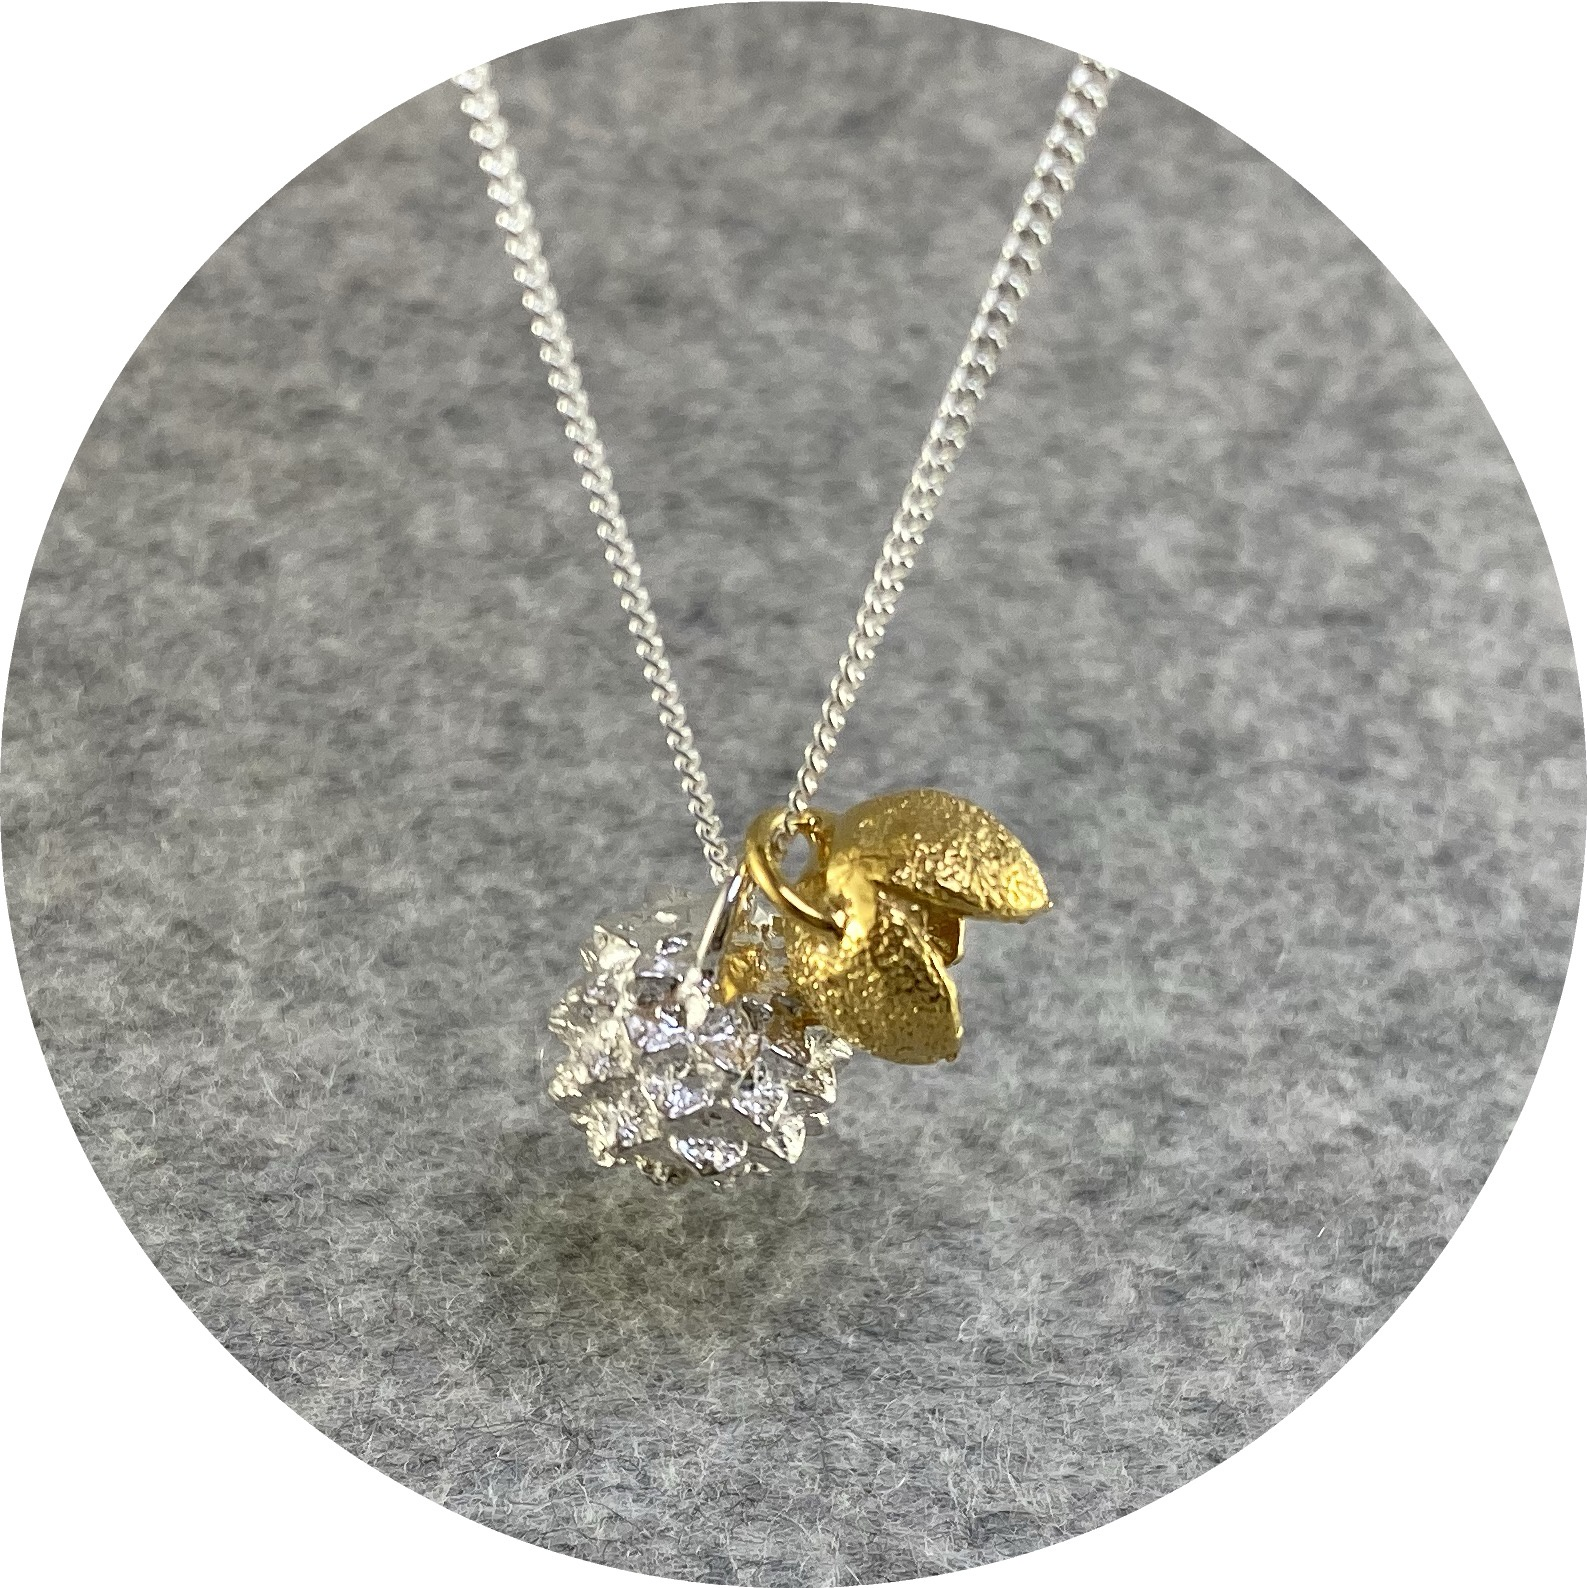 Manuela Igreja - 'She oak & Pittosporum Necklace', 925 silver, yellow gold plate